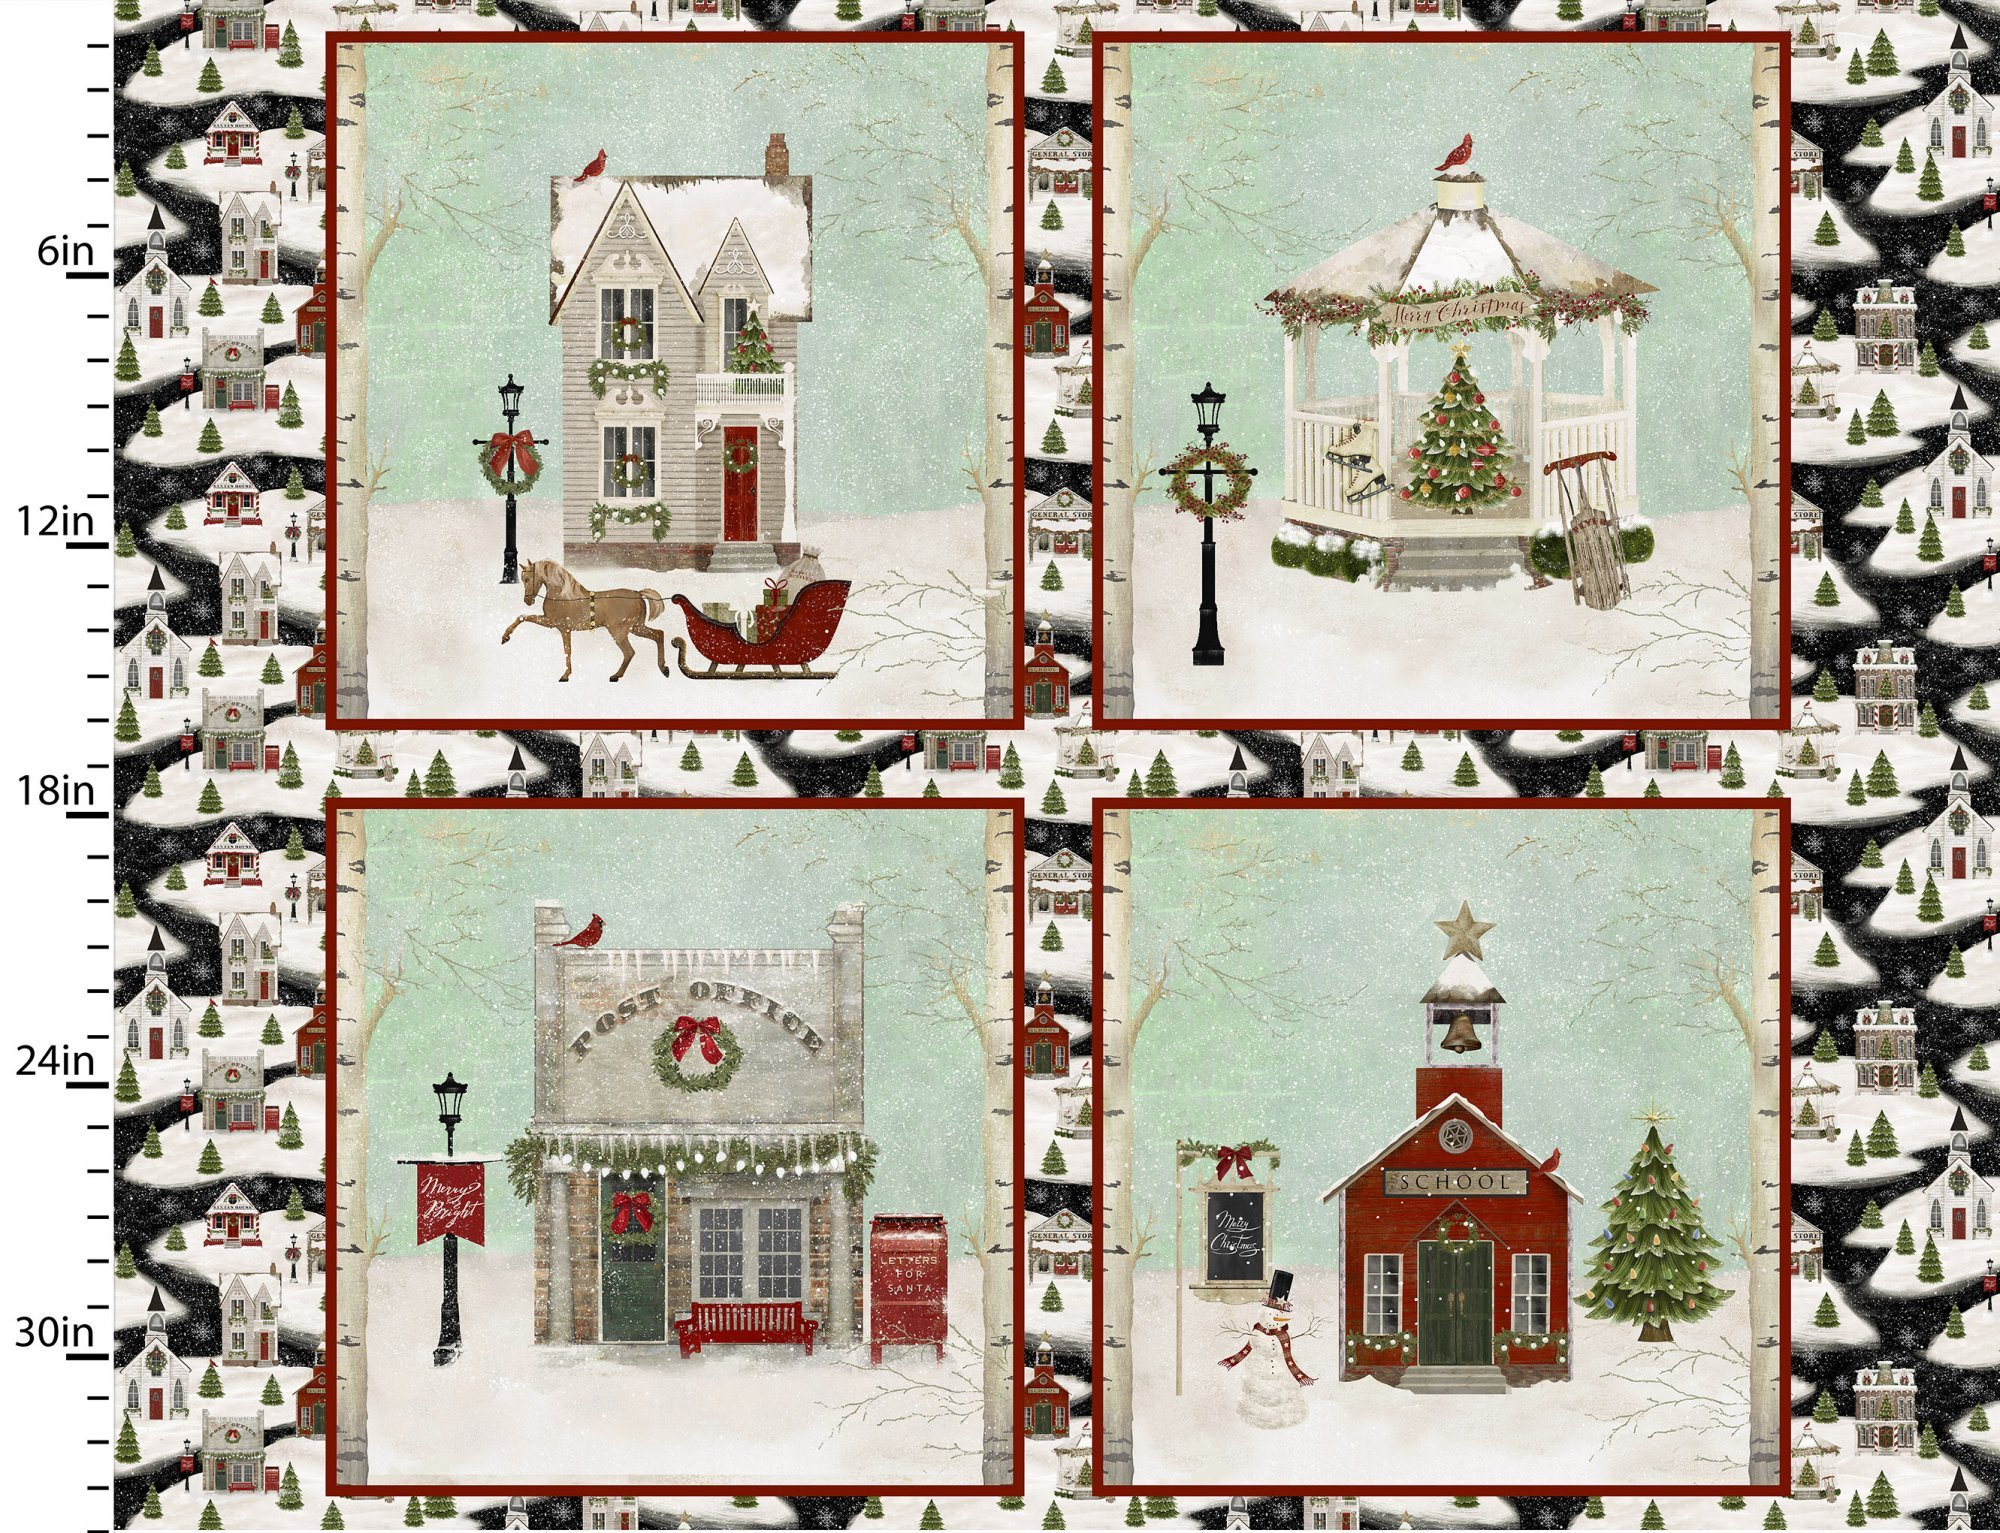 Home for the Holidays - 4 Village Buildings  - 43 x 36 Panel